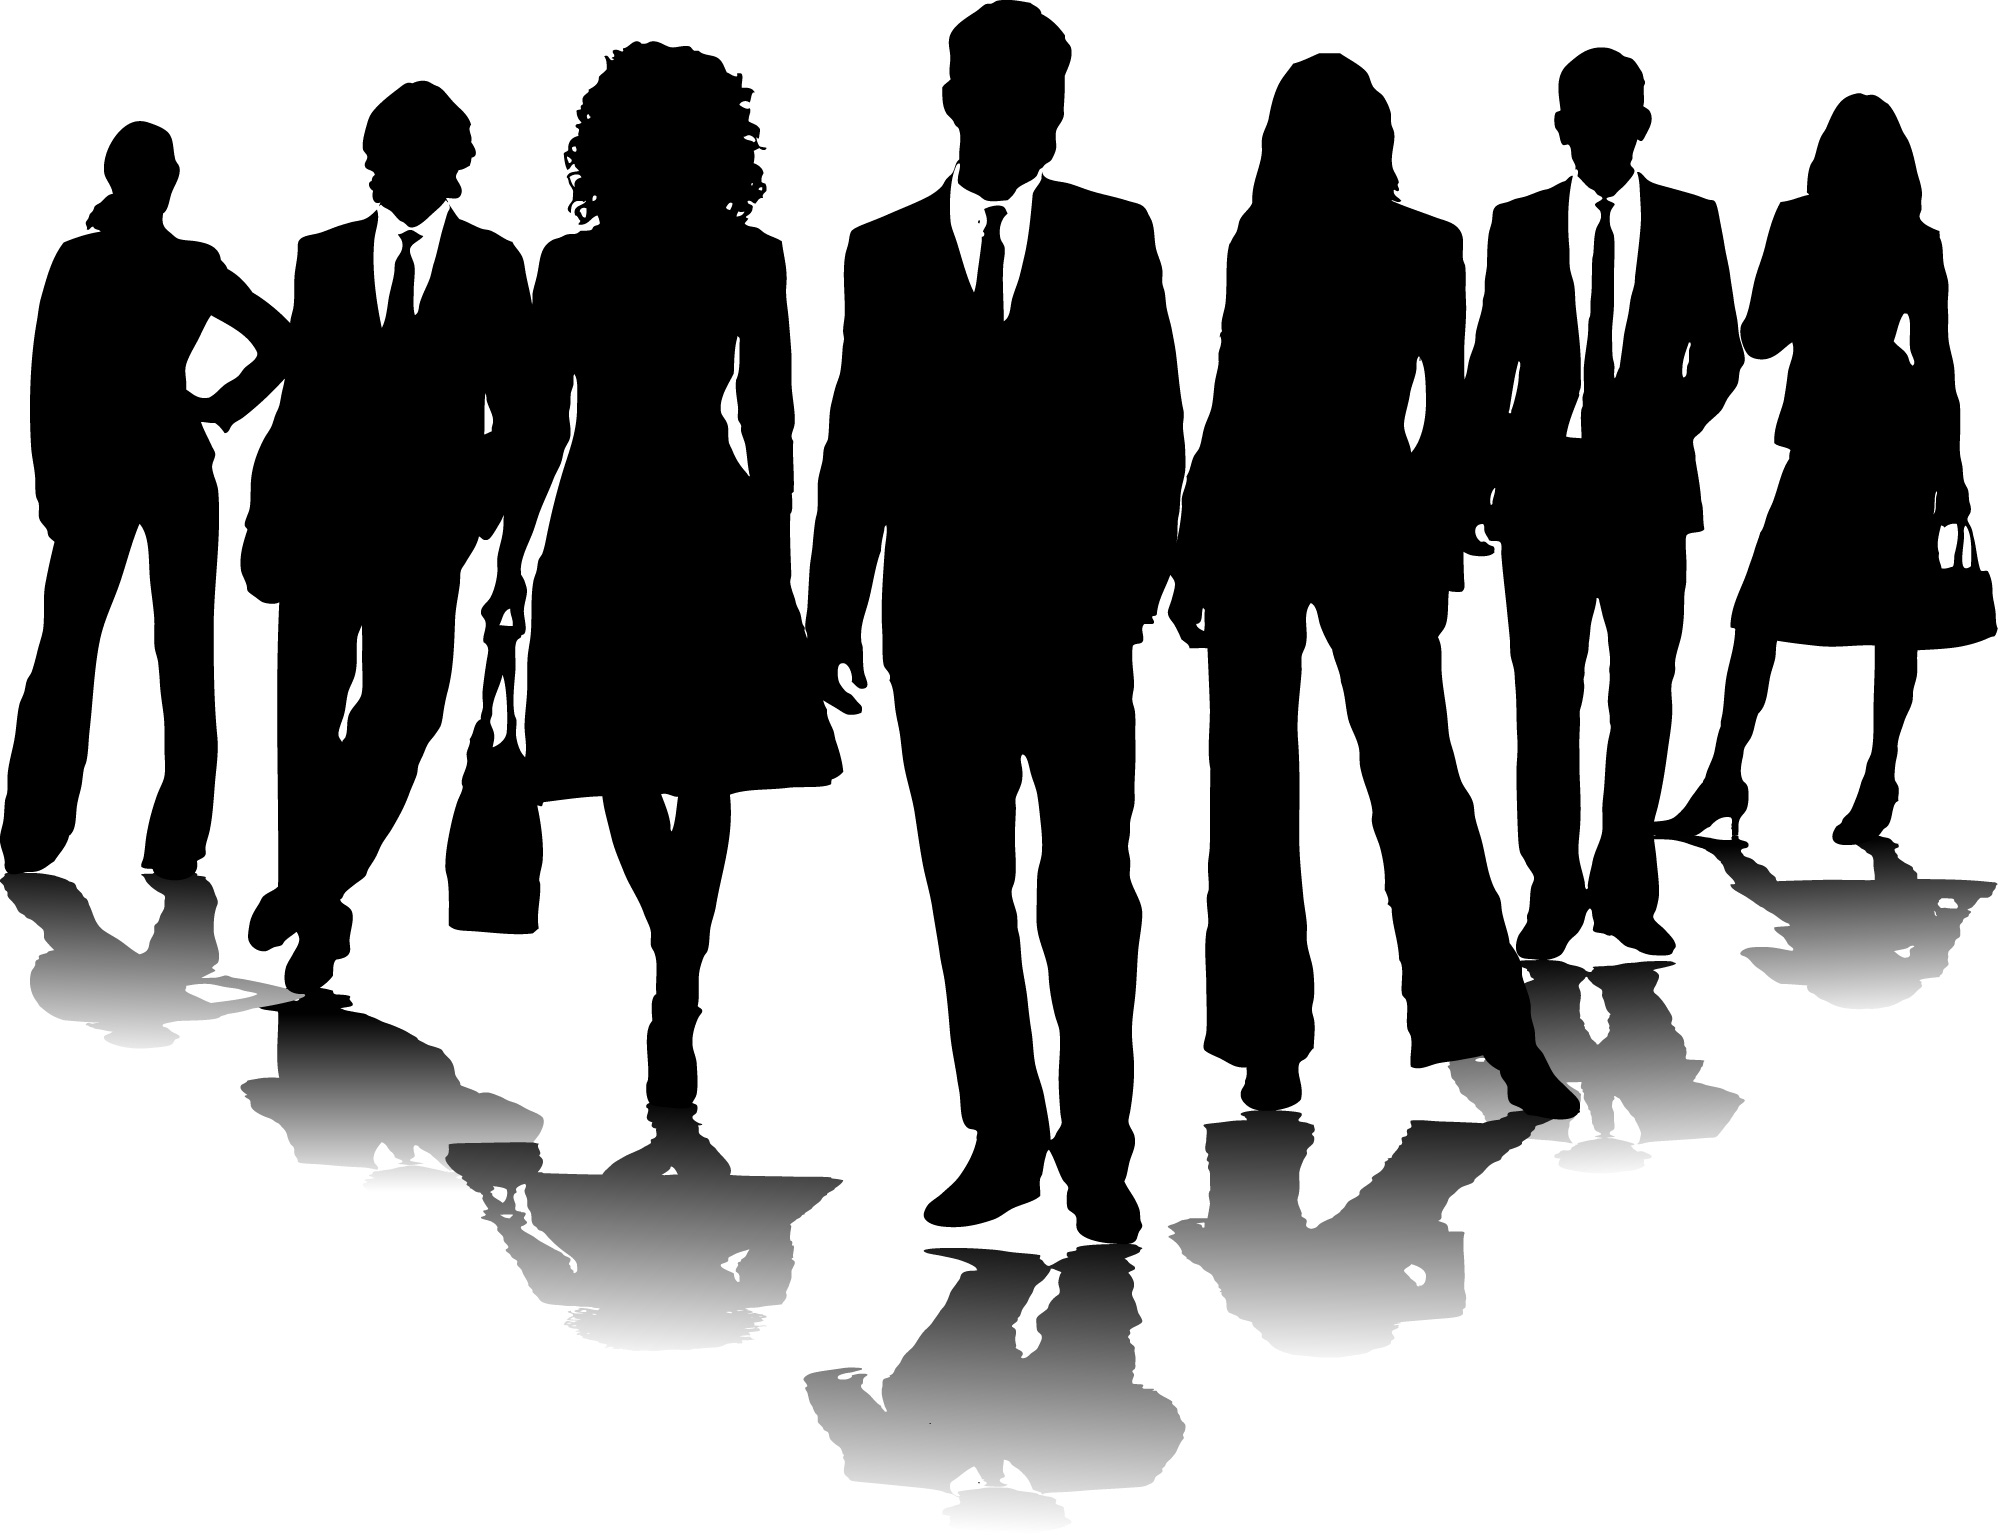 People divided transparent clipart.